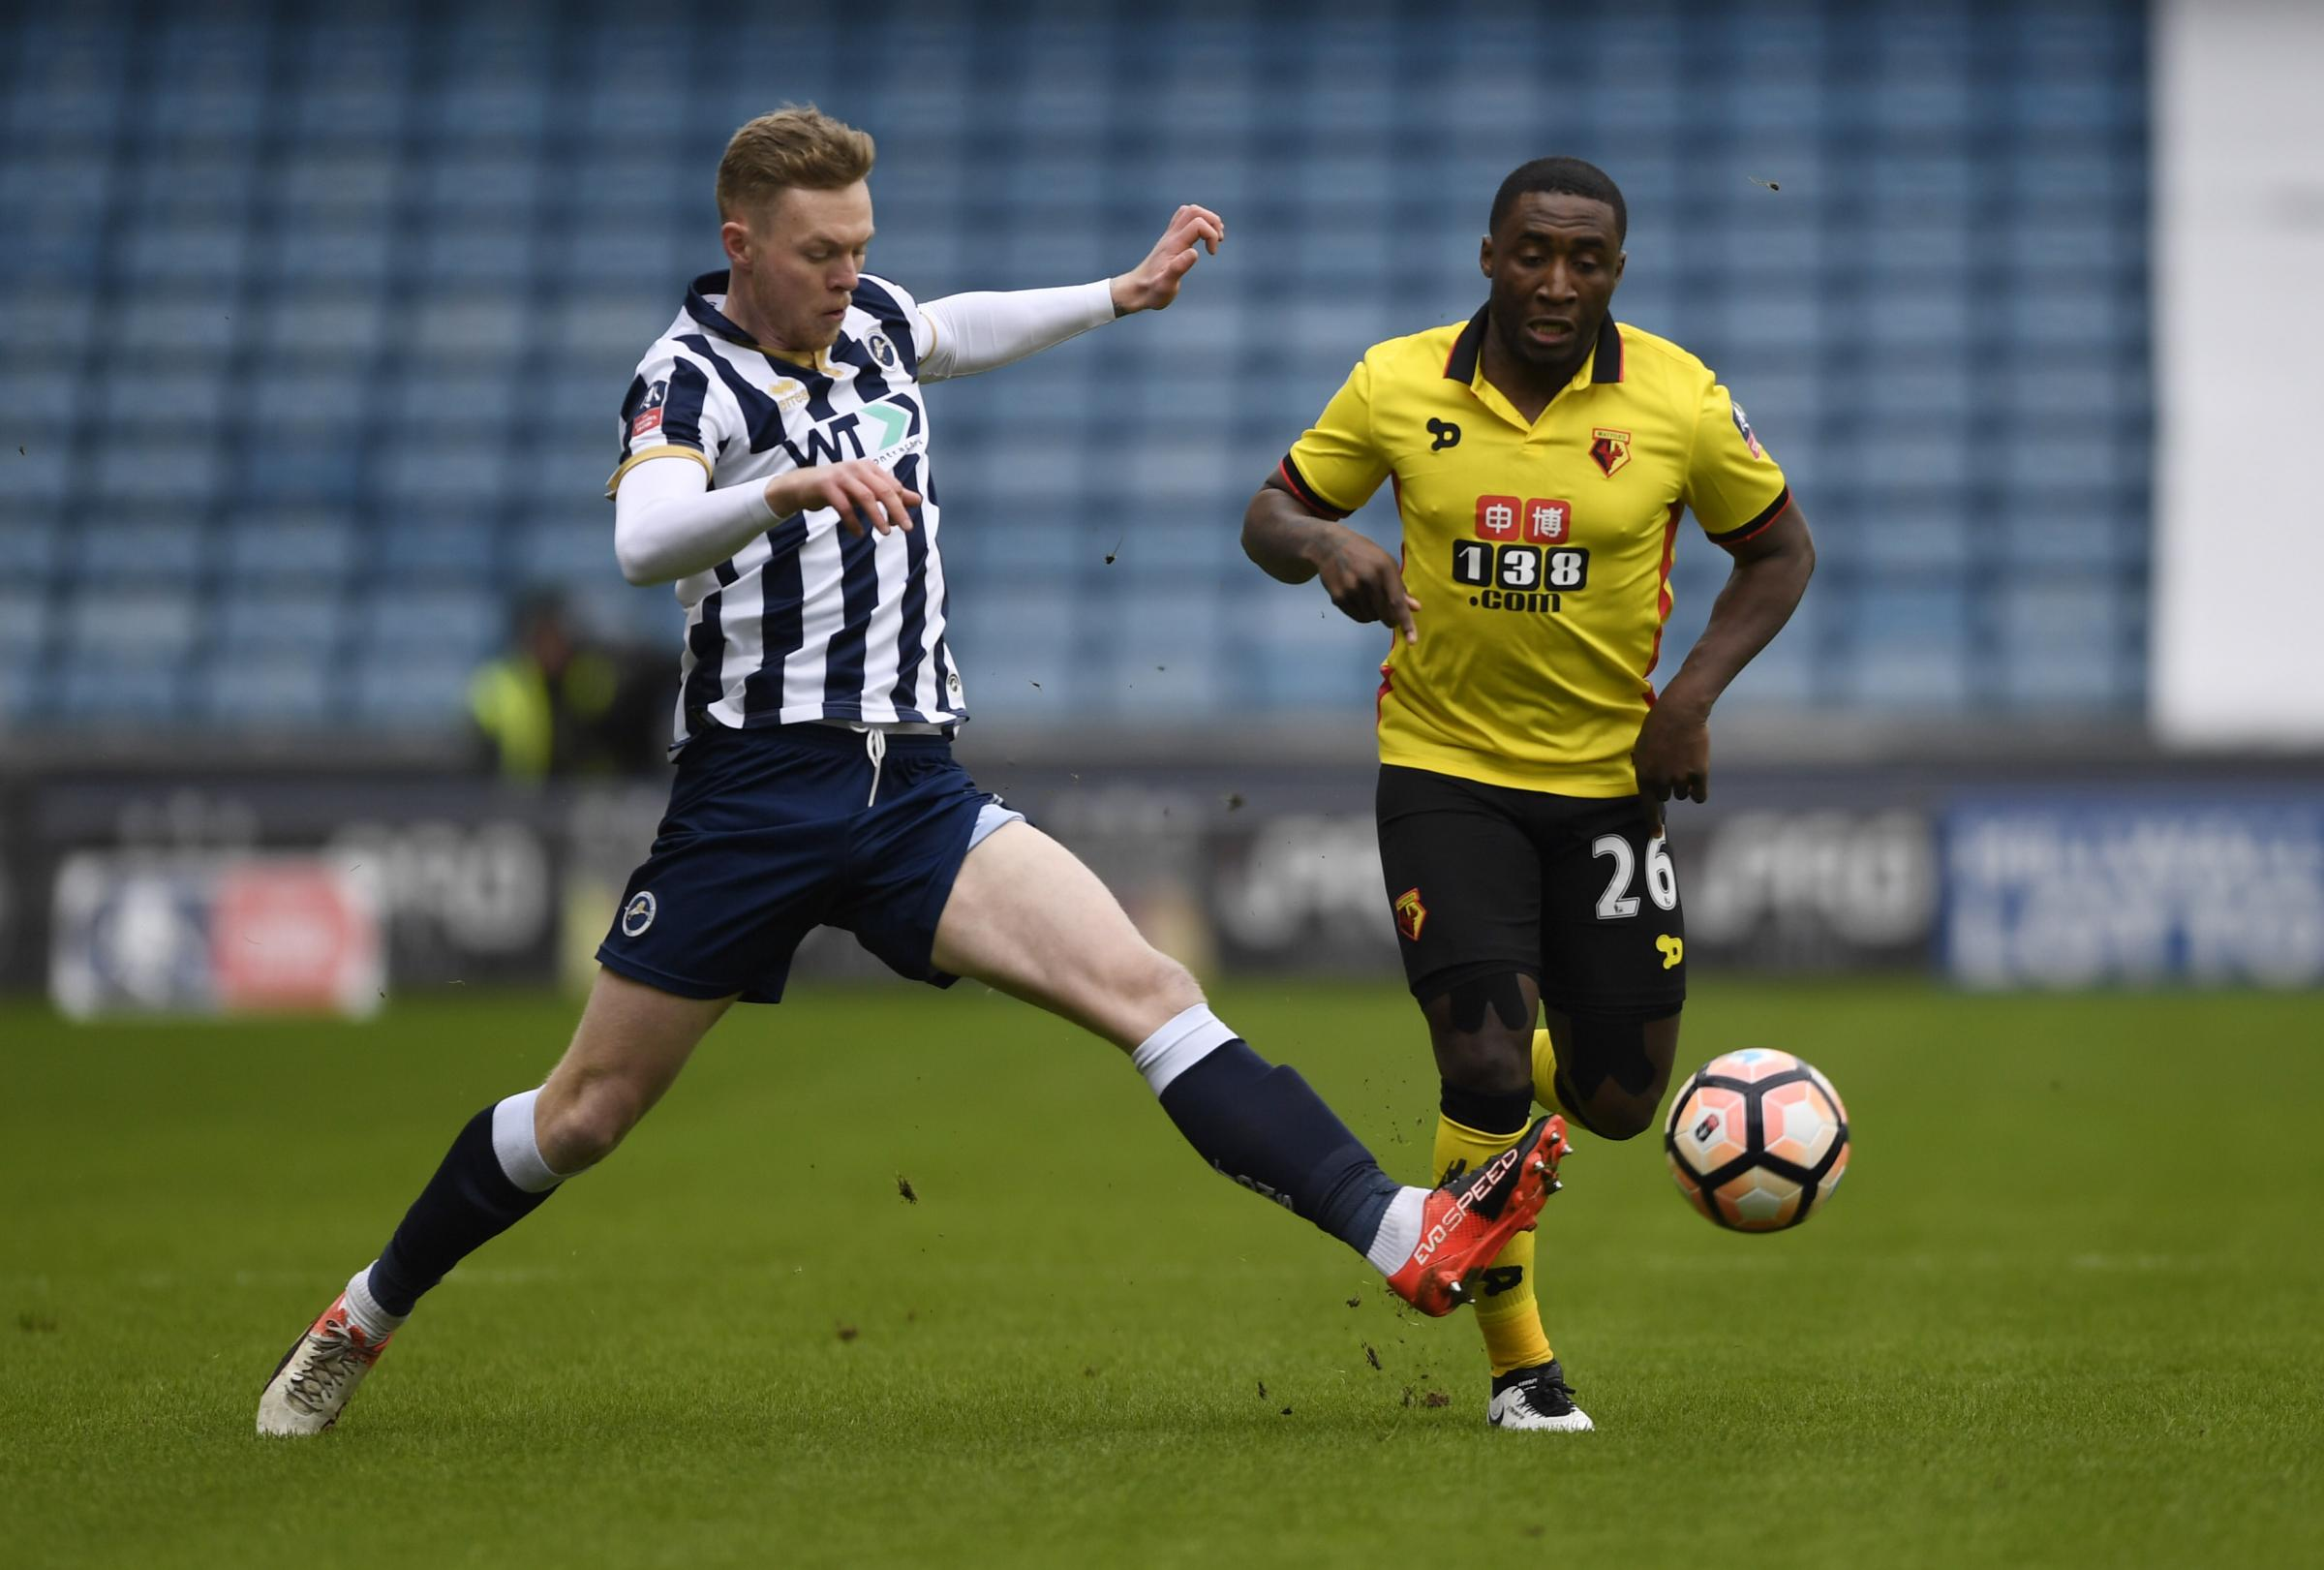 Brice Dja Djedje's last first-team appearance came at Millwall in 2016. Picture: Action Images